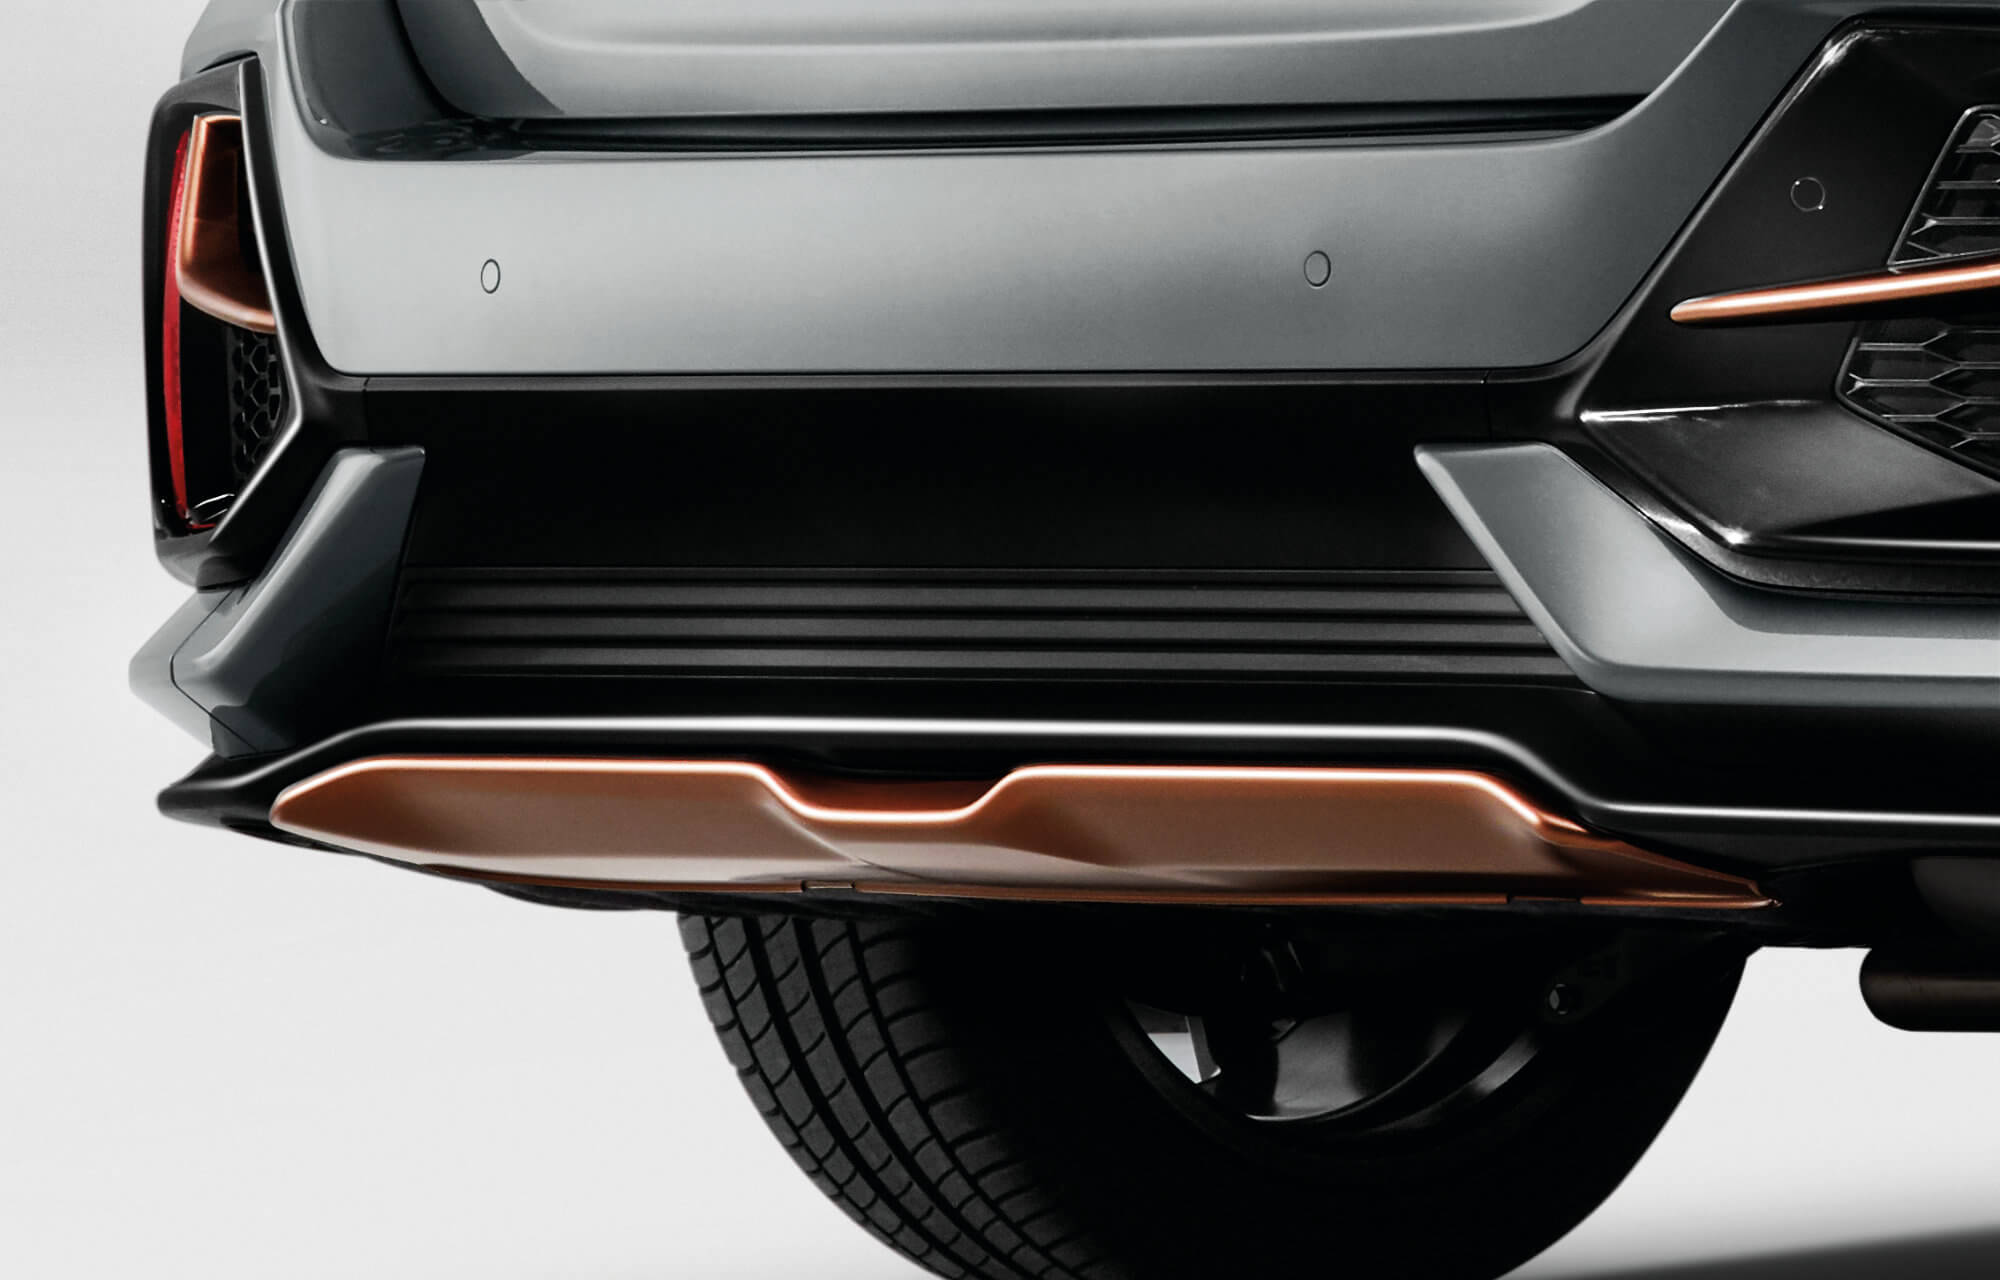 Honda Civic 5 Door Rear Diffuser - Infinite Bronze